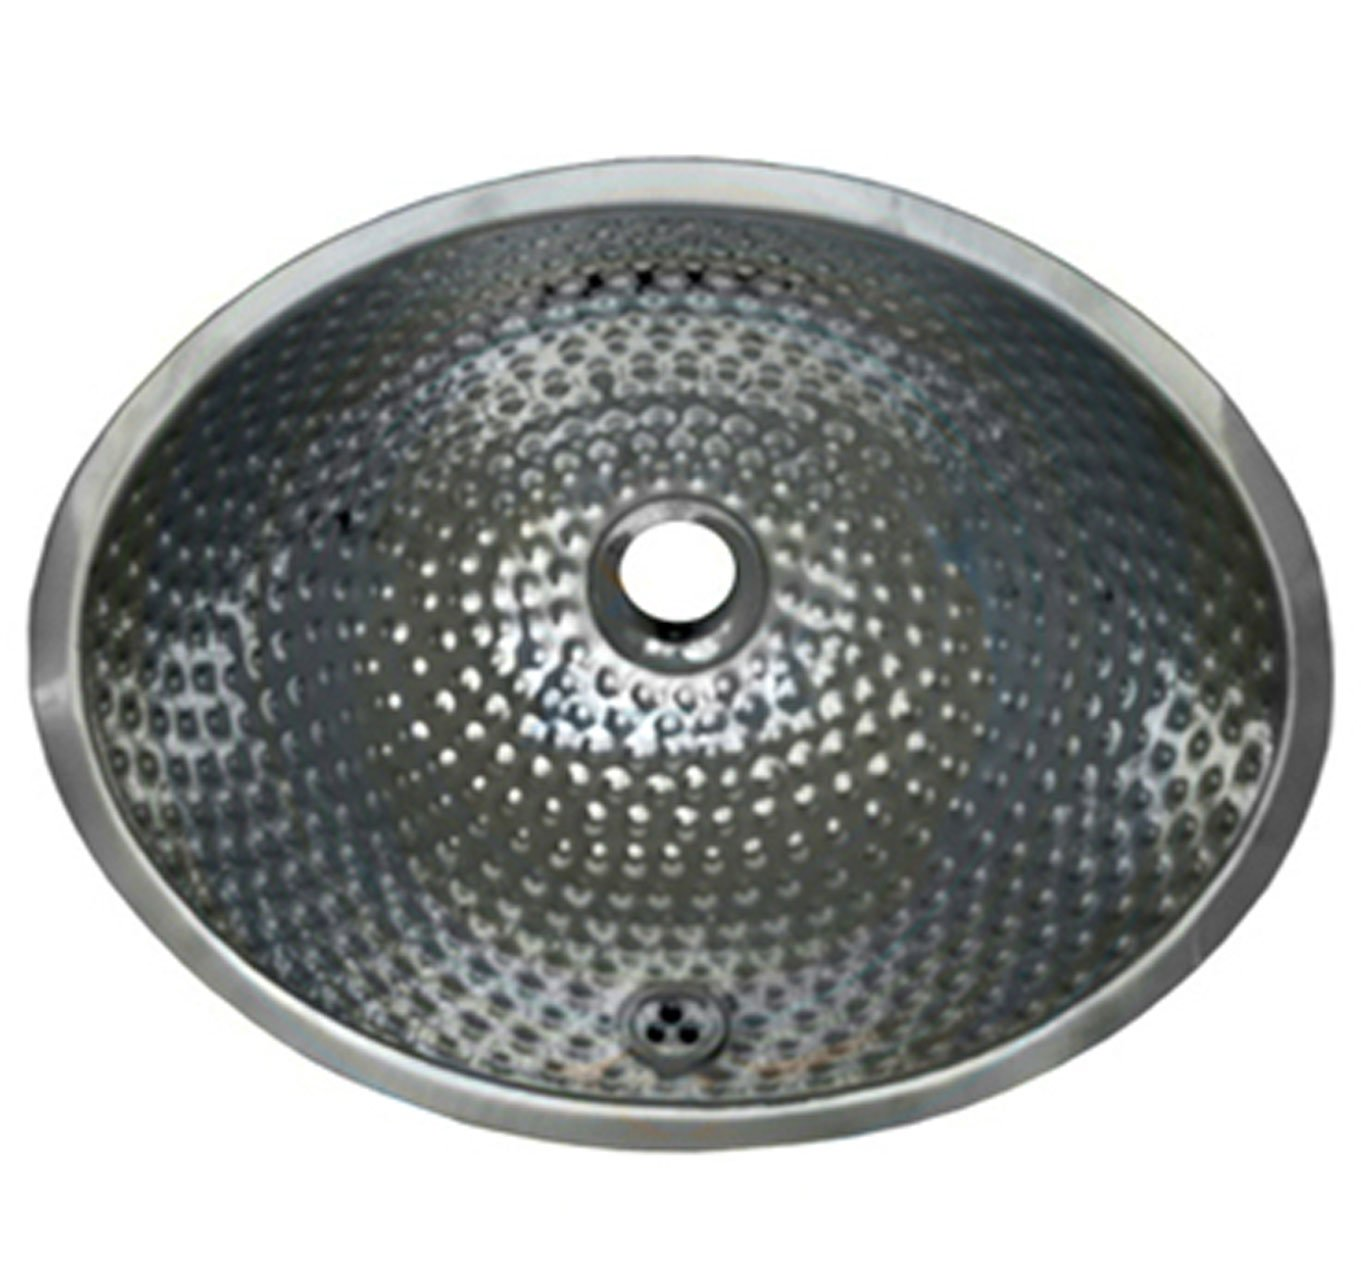 Whitehaus WH608ABM-POSS Oval Ball Pein 16-Inch Hammered Textured Undermount Lavatory Basin with Overflow by Whitehaus Collection